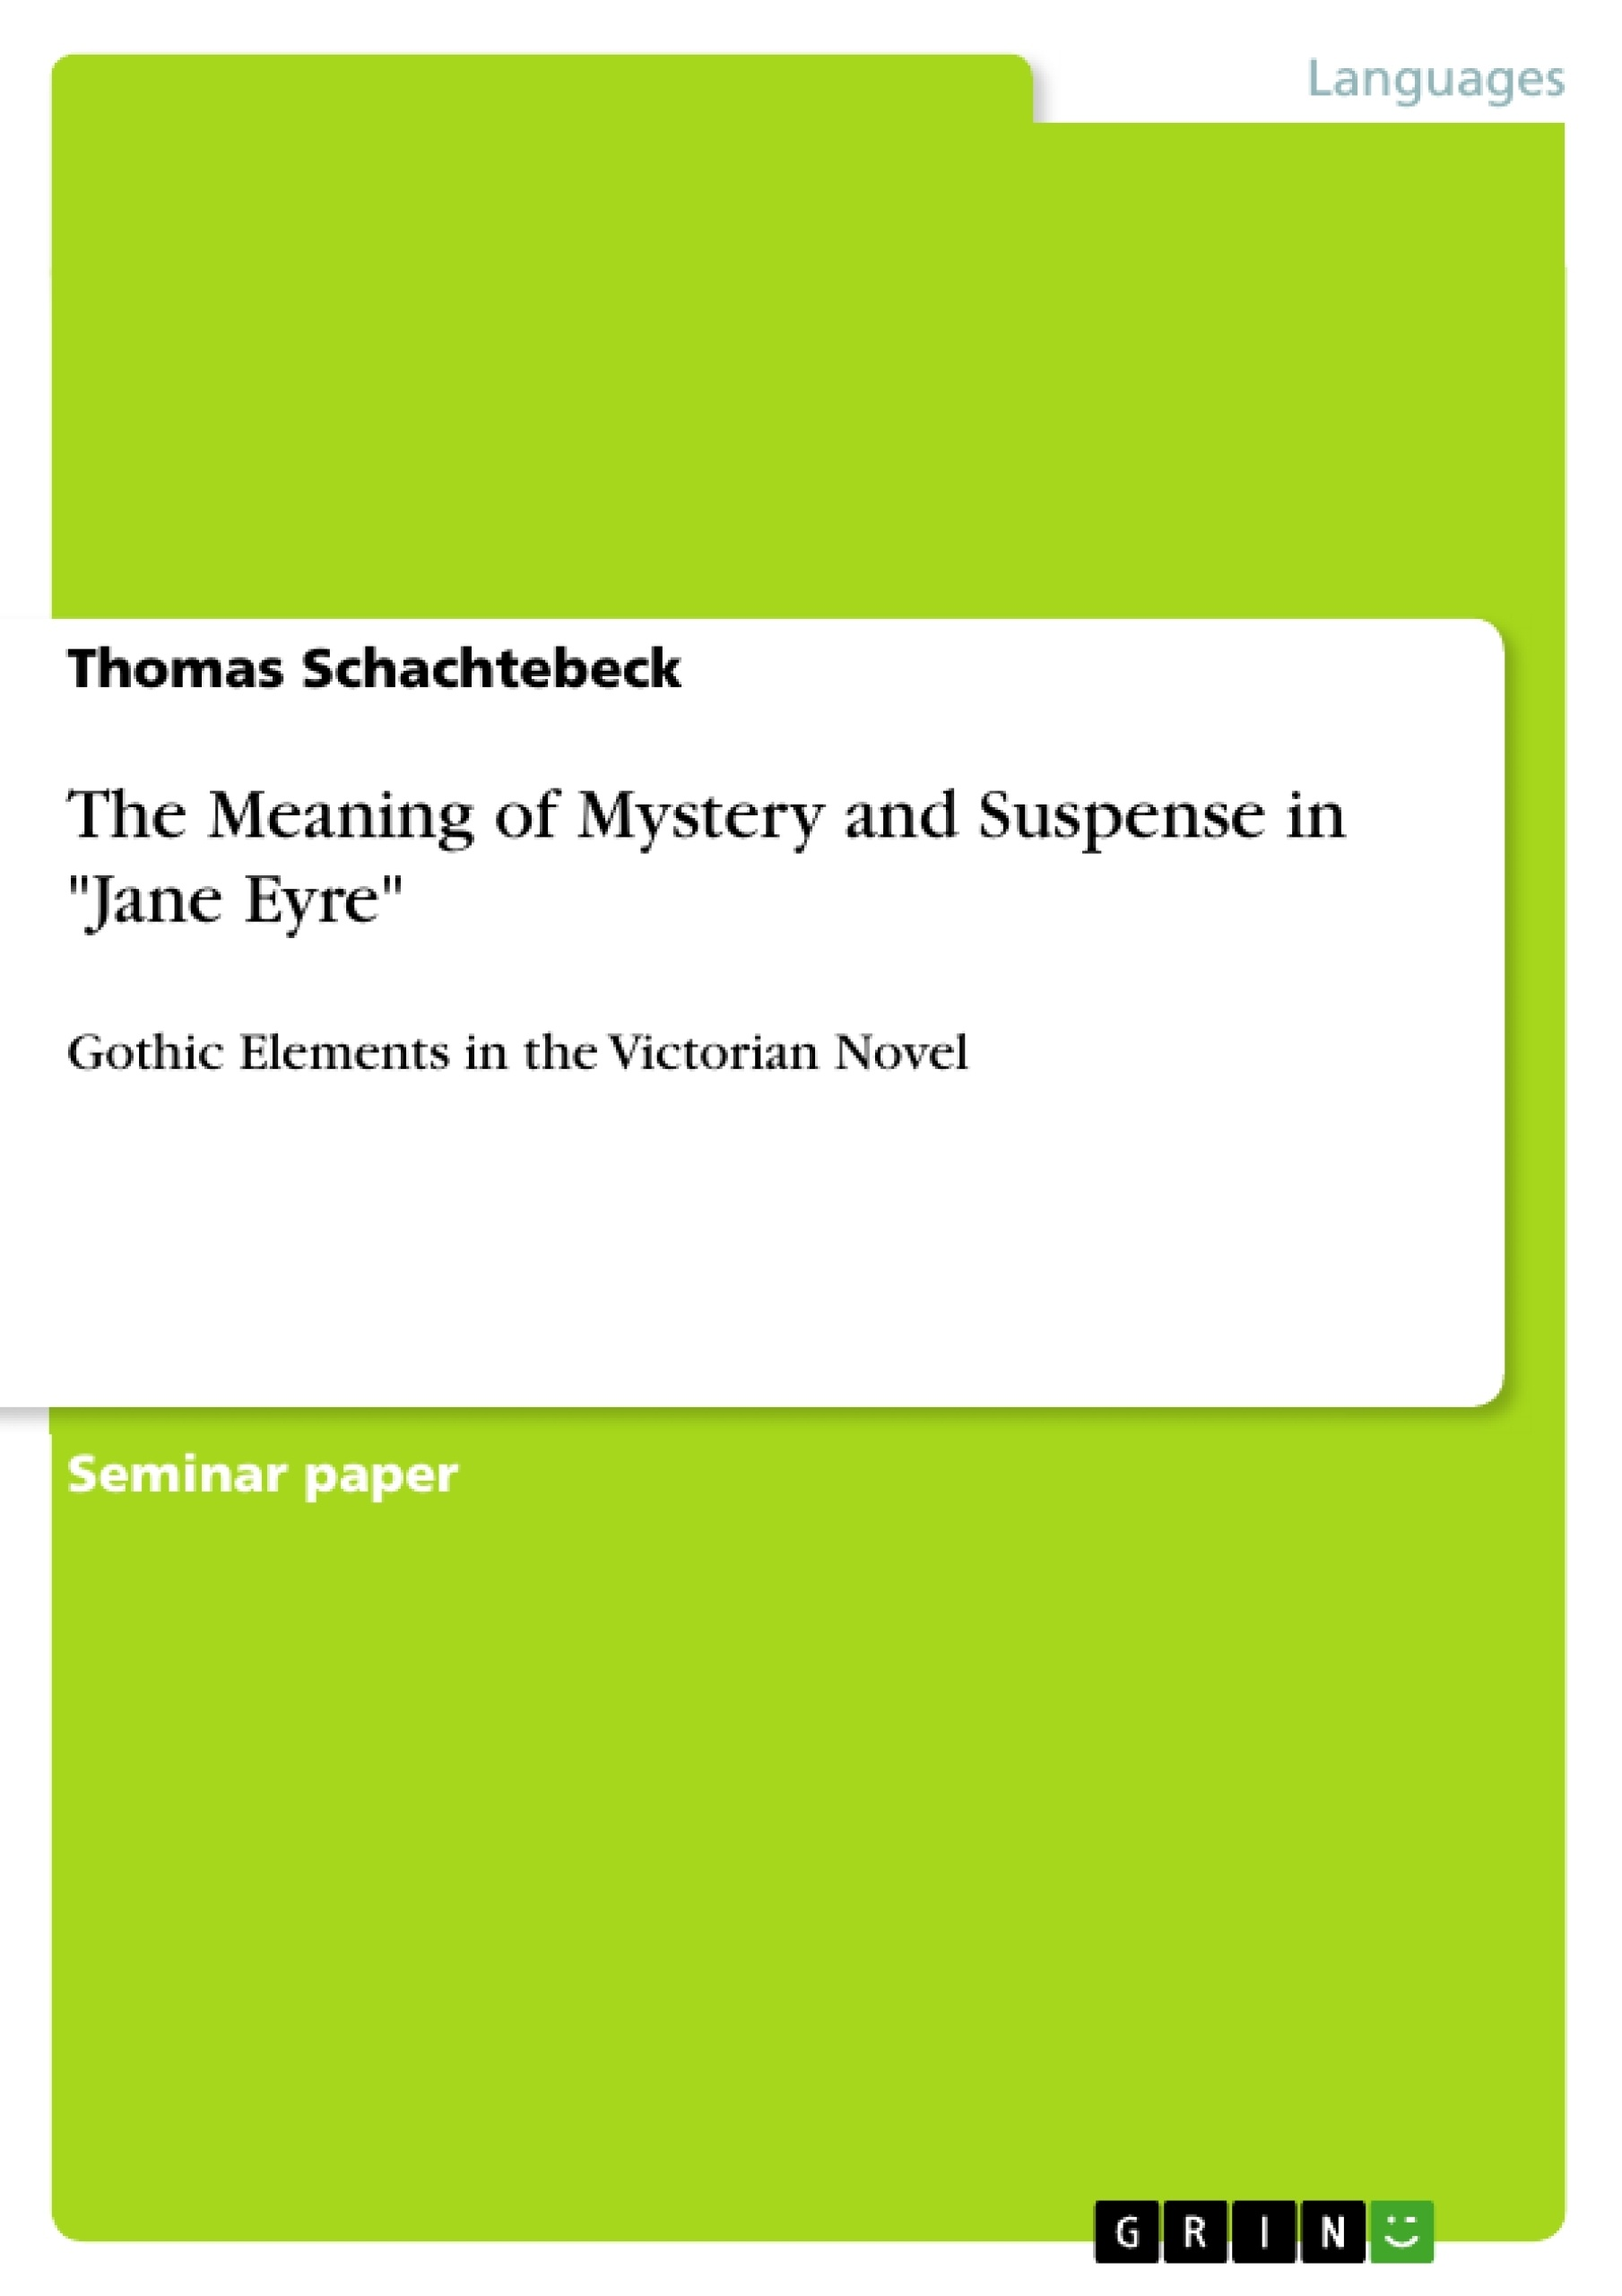 The Meaning Of Mystery And Suspense In Jane Eyre  Publish Your  Upload Your Own Papers Earn Money And Win An Iphone X